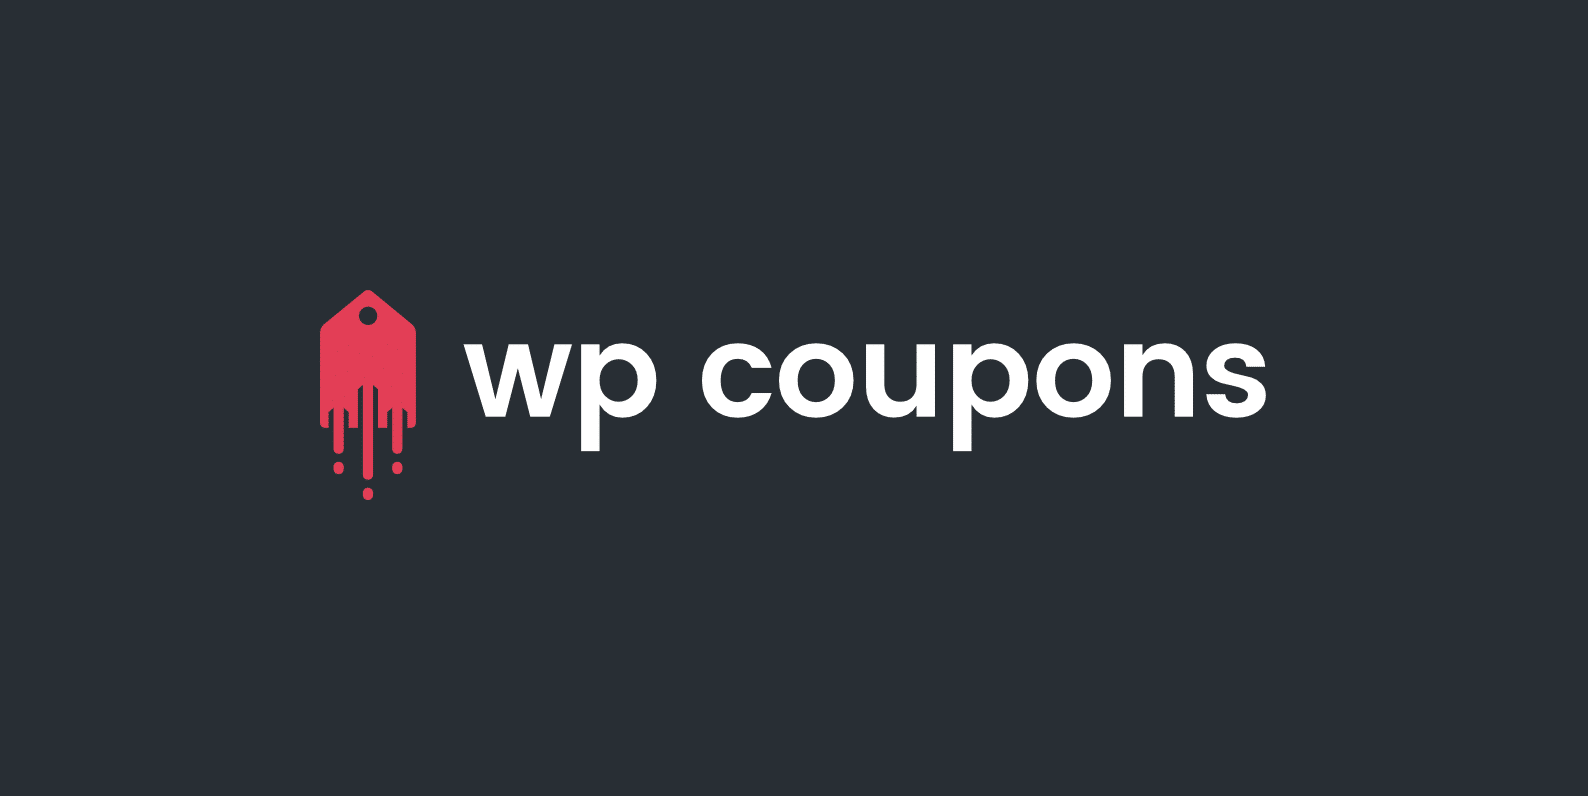 WP Coupons